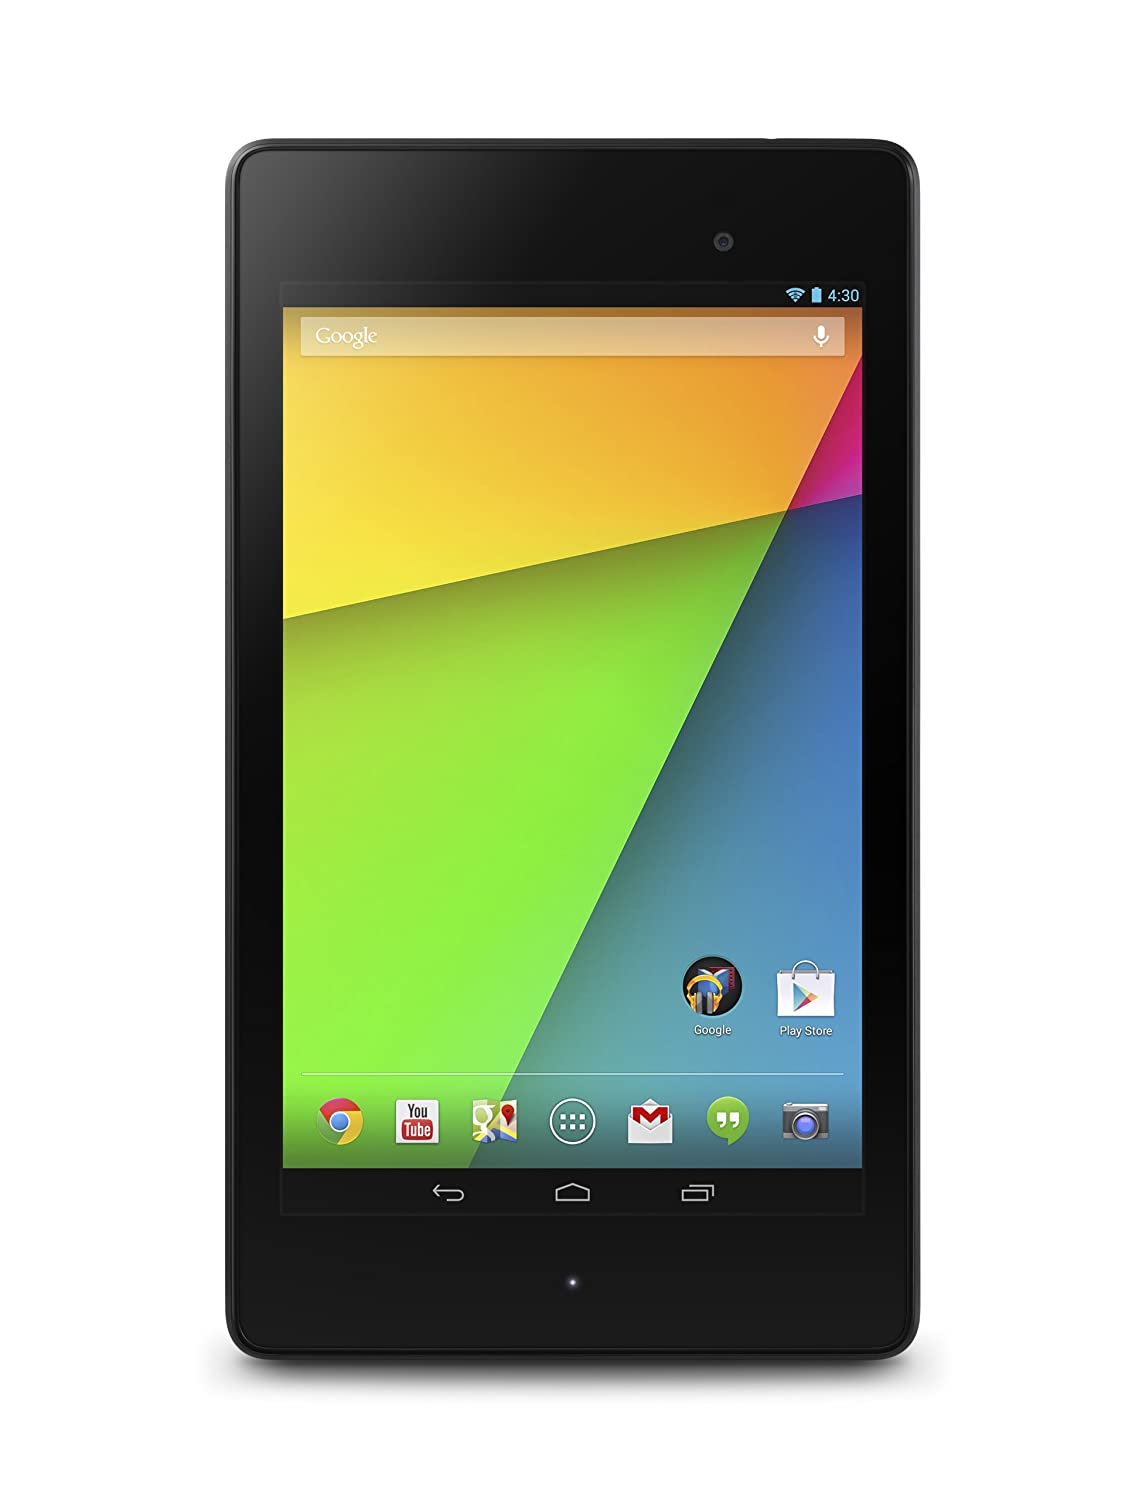 Google Nexus 7 Tablet (7-Inch, 16GB, Black) by ASUS (2013) $199.99